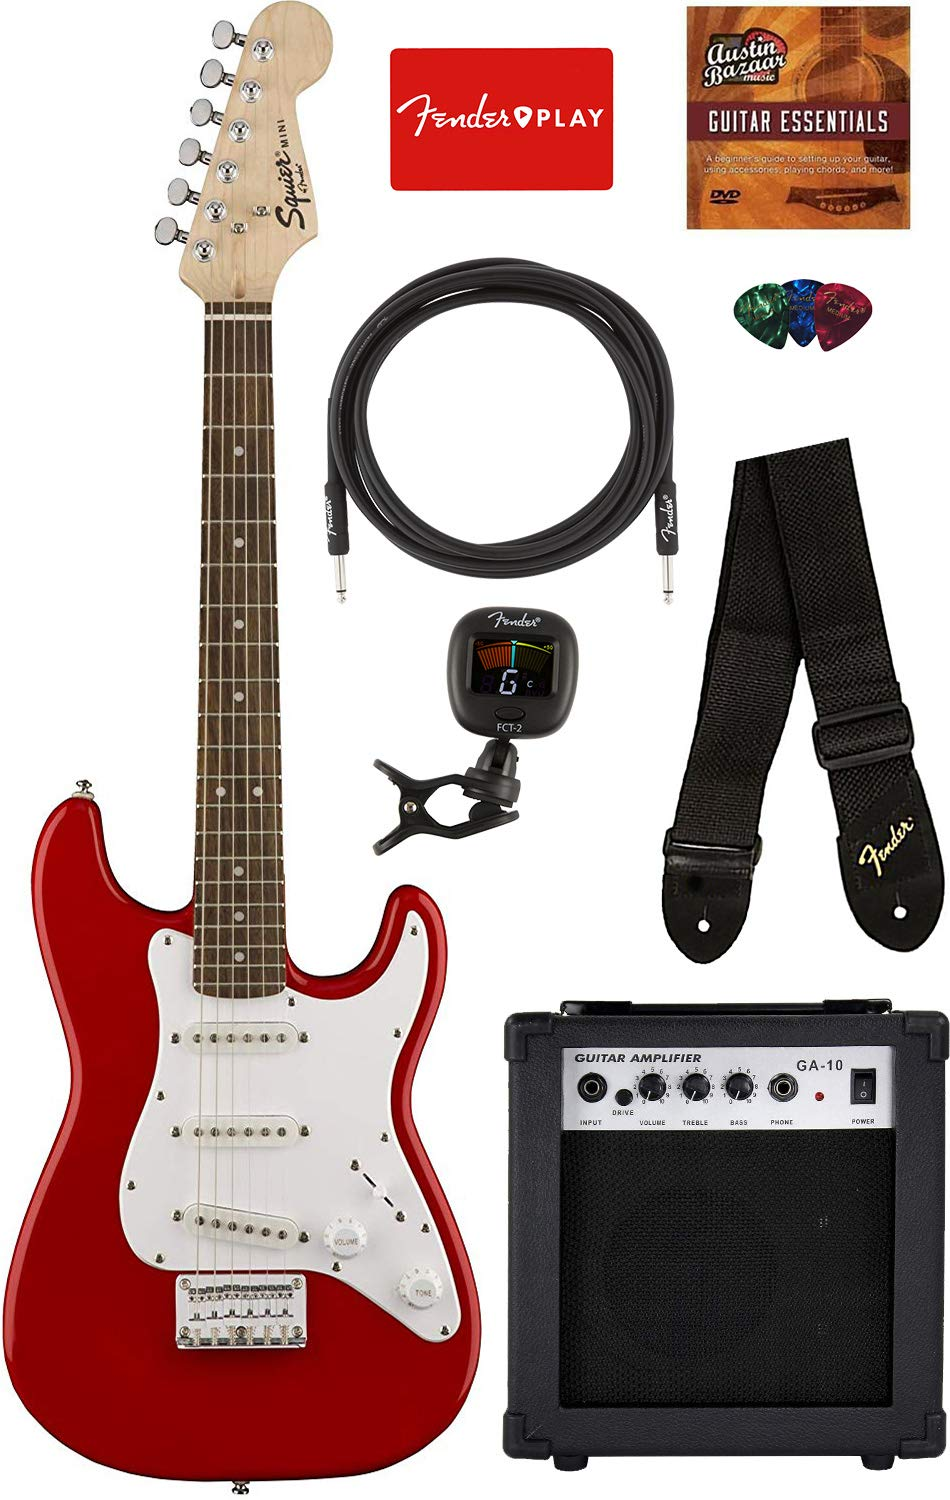 Squier by Fender Mini Strat Electric Guitar - Torino Red Bundle with Amplifier, Instrument Cable, Tuner, Strap, Picks, Fender Play Online Lessons, and Austin Bazaar Instructional DVD by Austin Bazaar